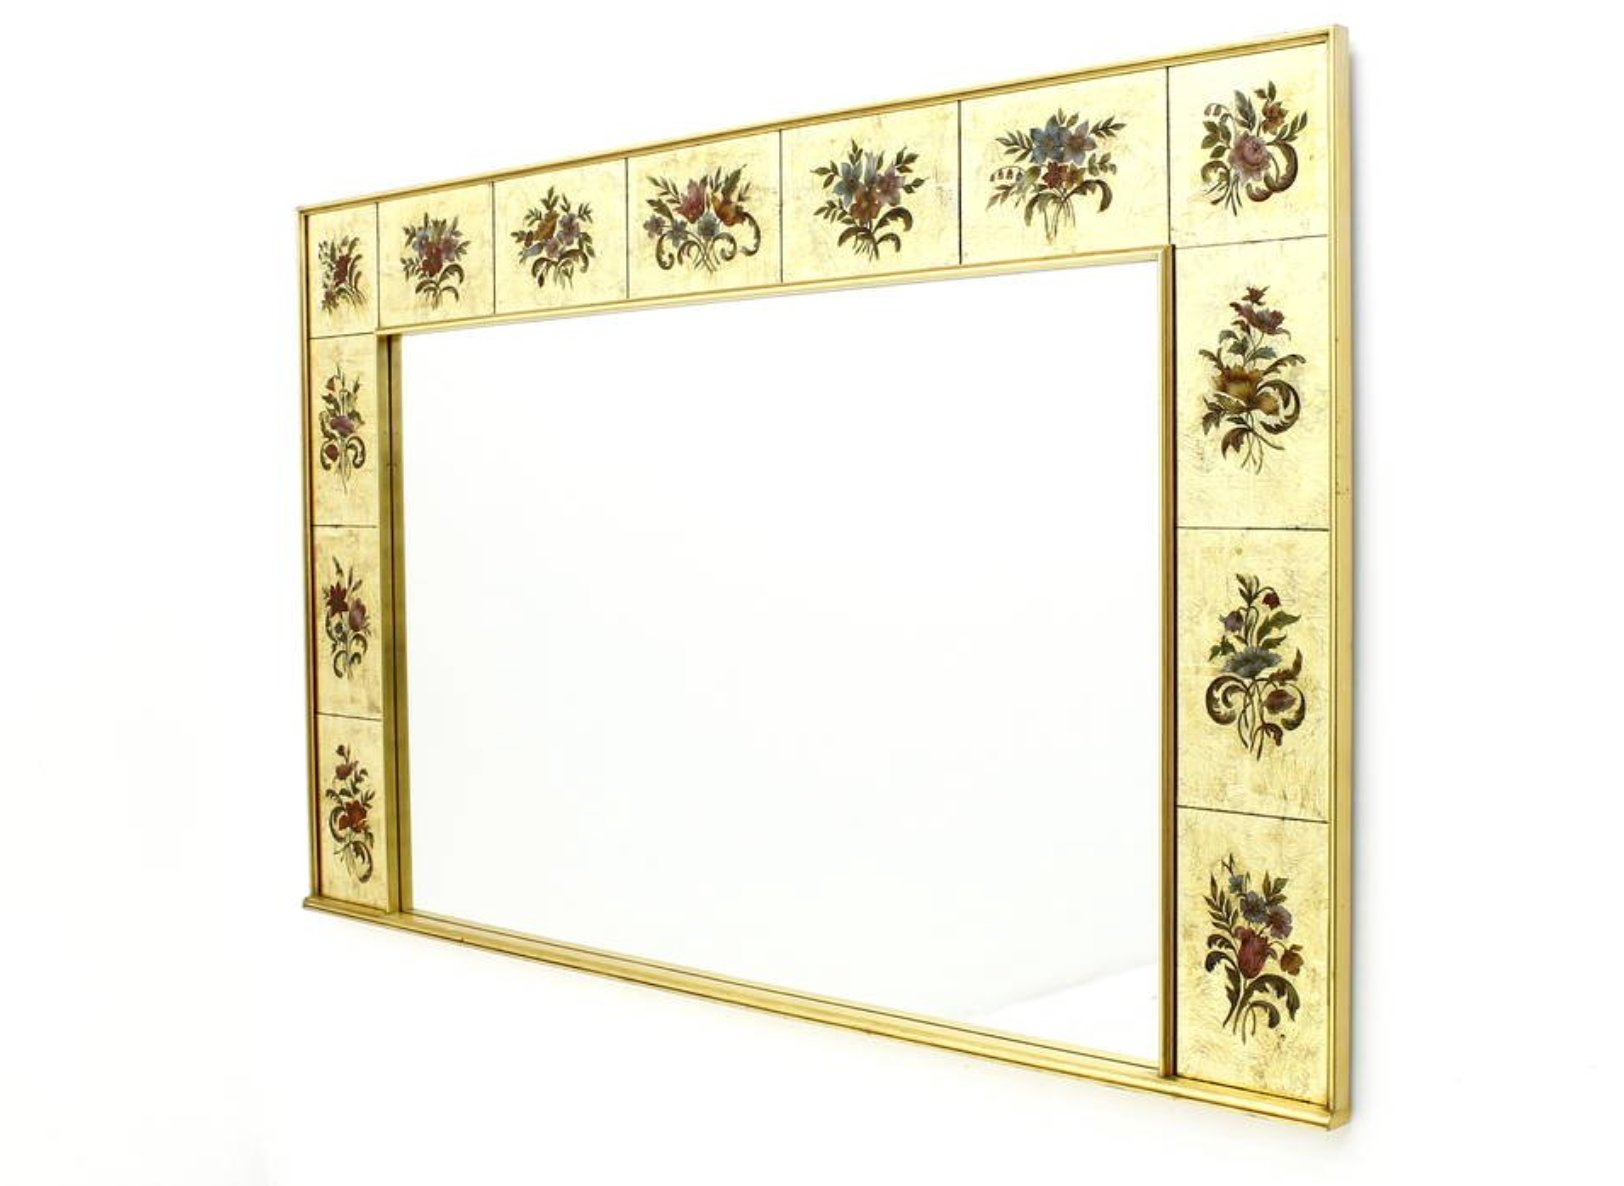 Large decorative wall mirror 1980s for sale at pamono for Large wall mirrors for sale